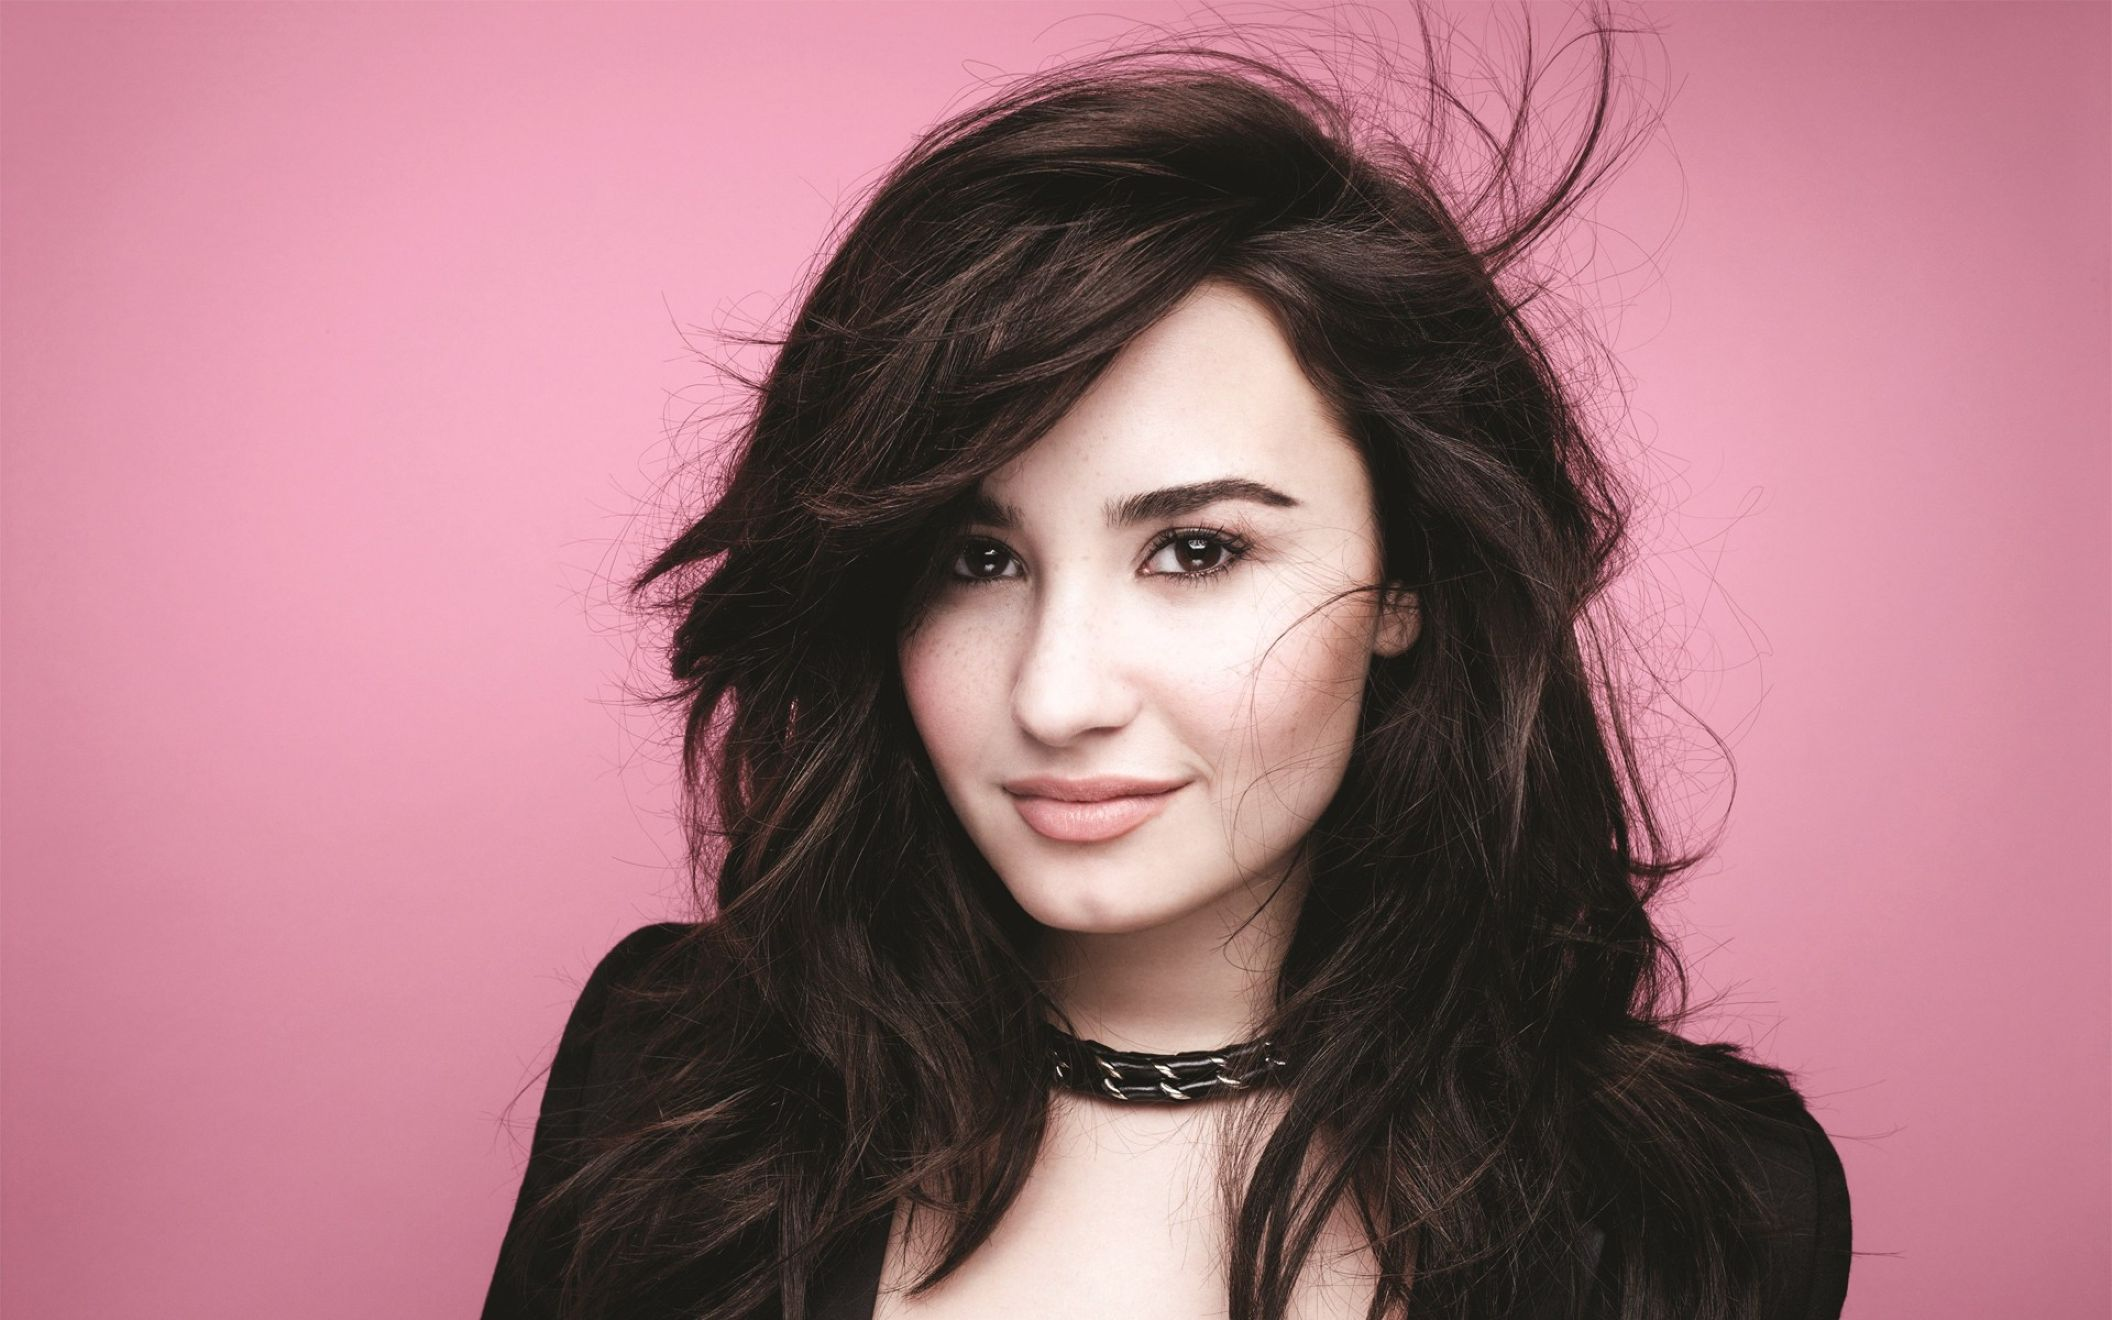 demi lovato girlfriend wide wallpaper: desktop hd wallpaper